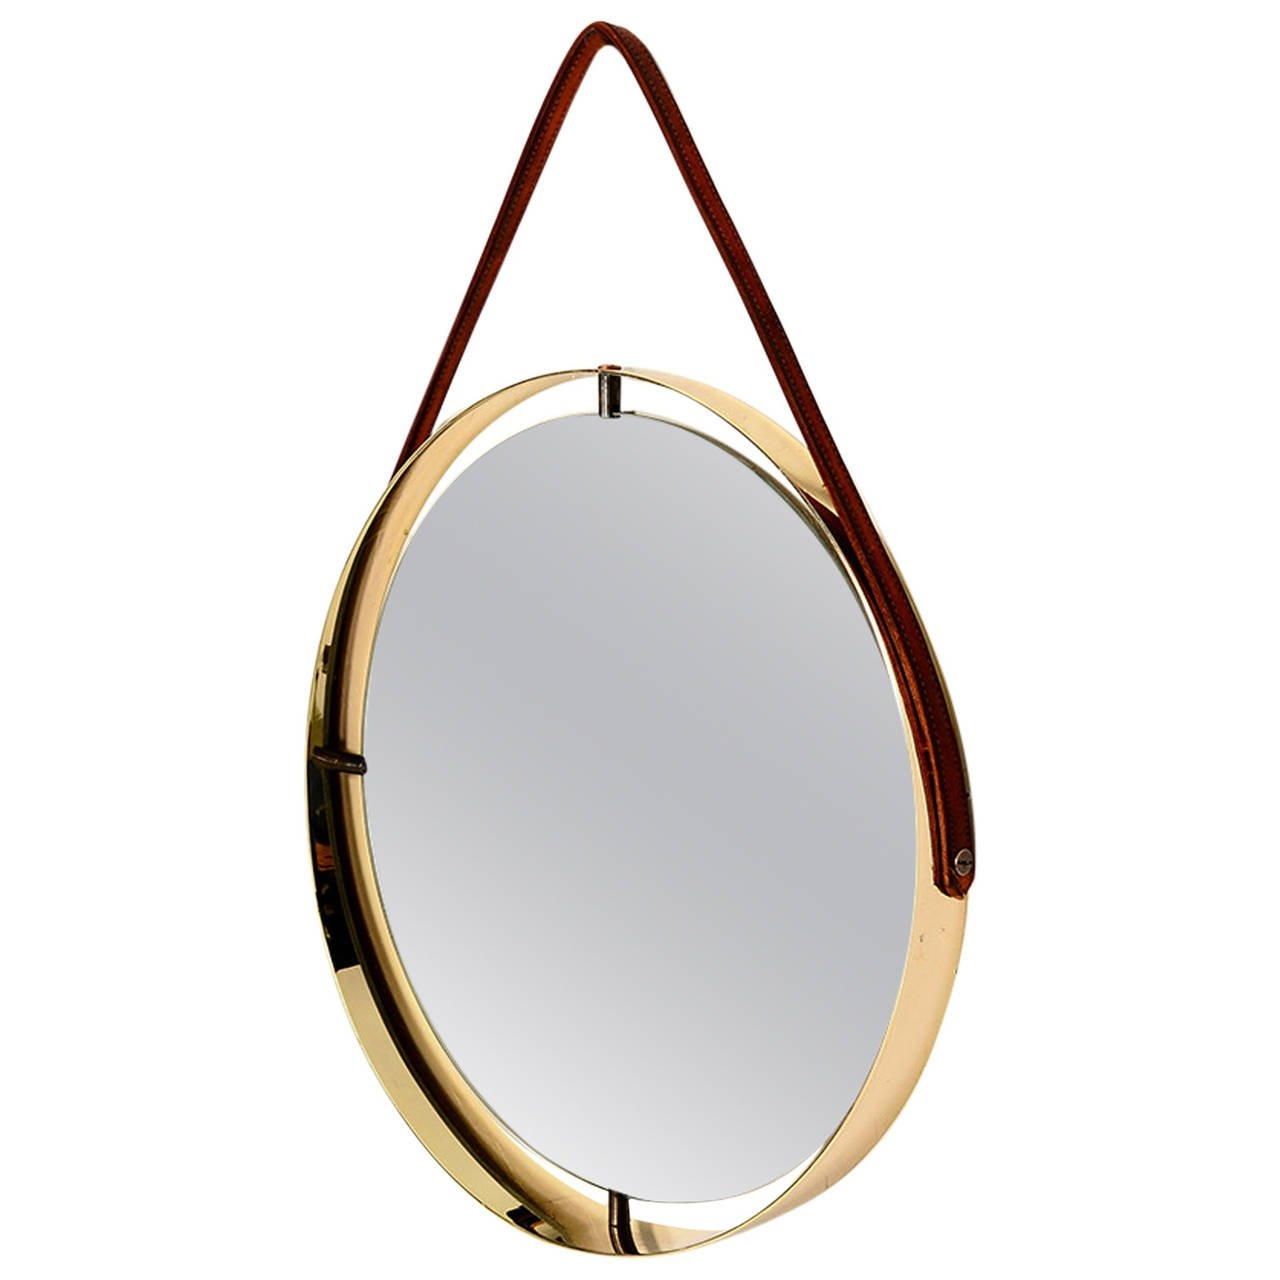 Round Mirror With Leather Strap For Sale At 1stdibs With Round Mirror Leather (Image 10 of 15)